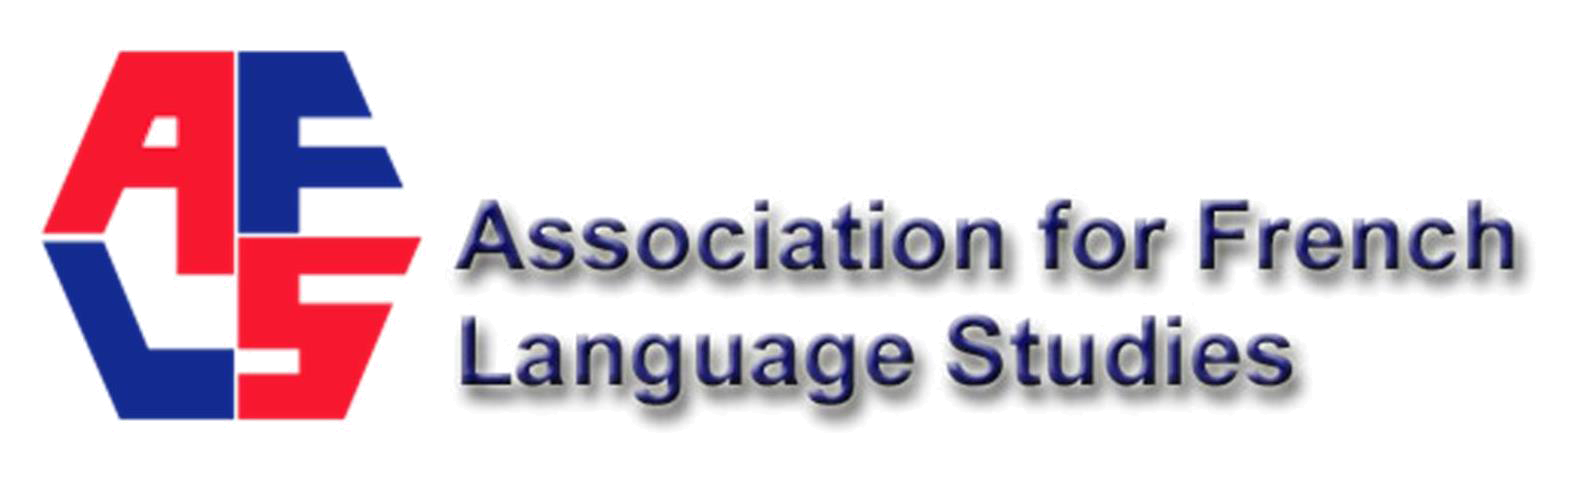 Association for French Language Studies